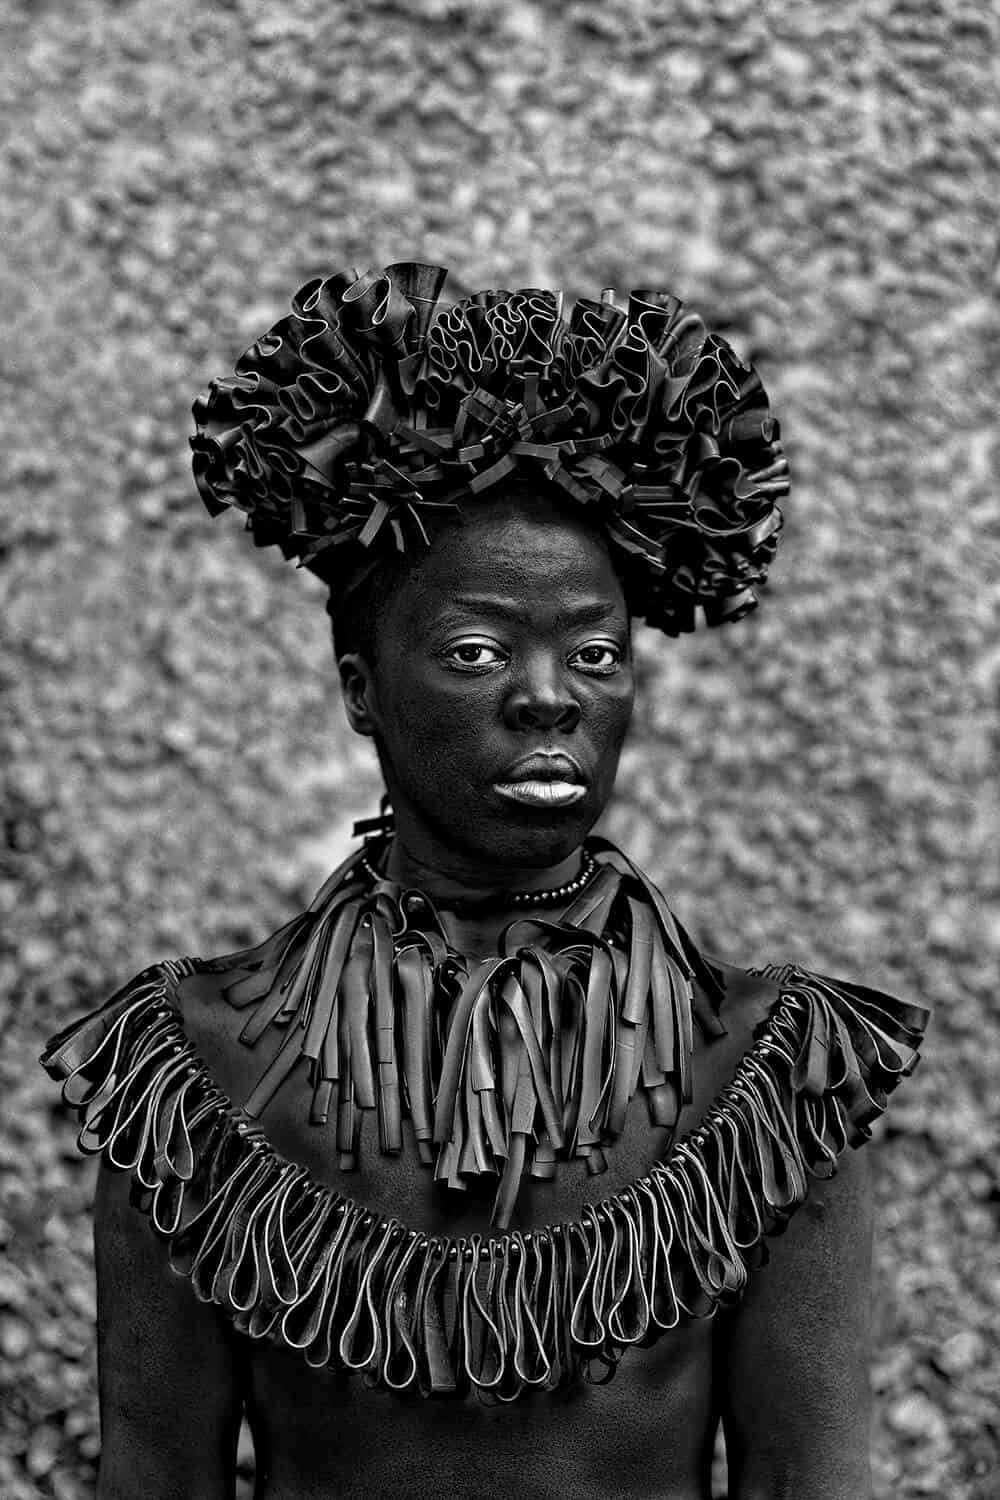 Hlonipha, Cassilhaus, Chapel Hill, North Carolina, 2016. © Zanele Muholi. Courtesy of Stevenson, Cape Town/Johannesburg and Yancey Richardson, New York